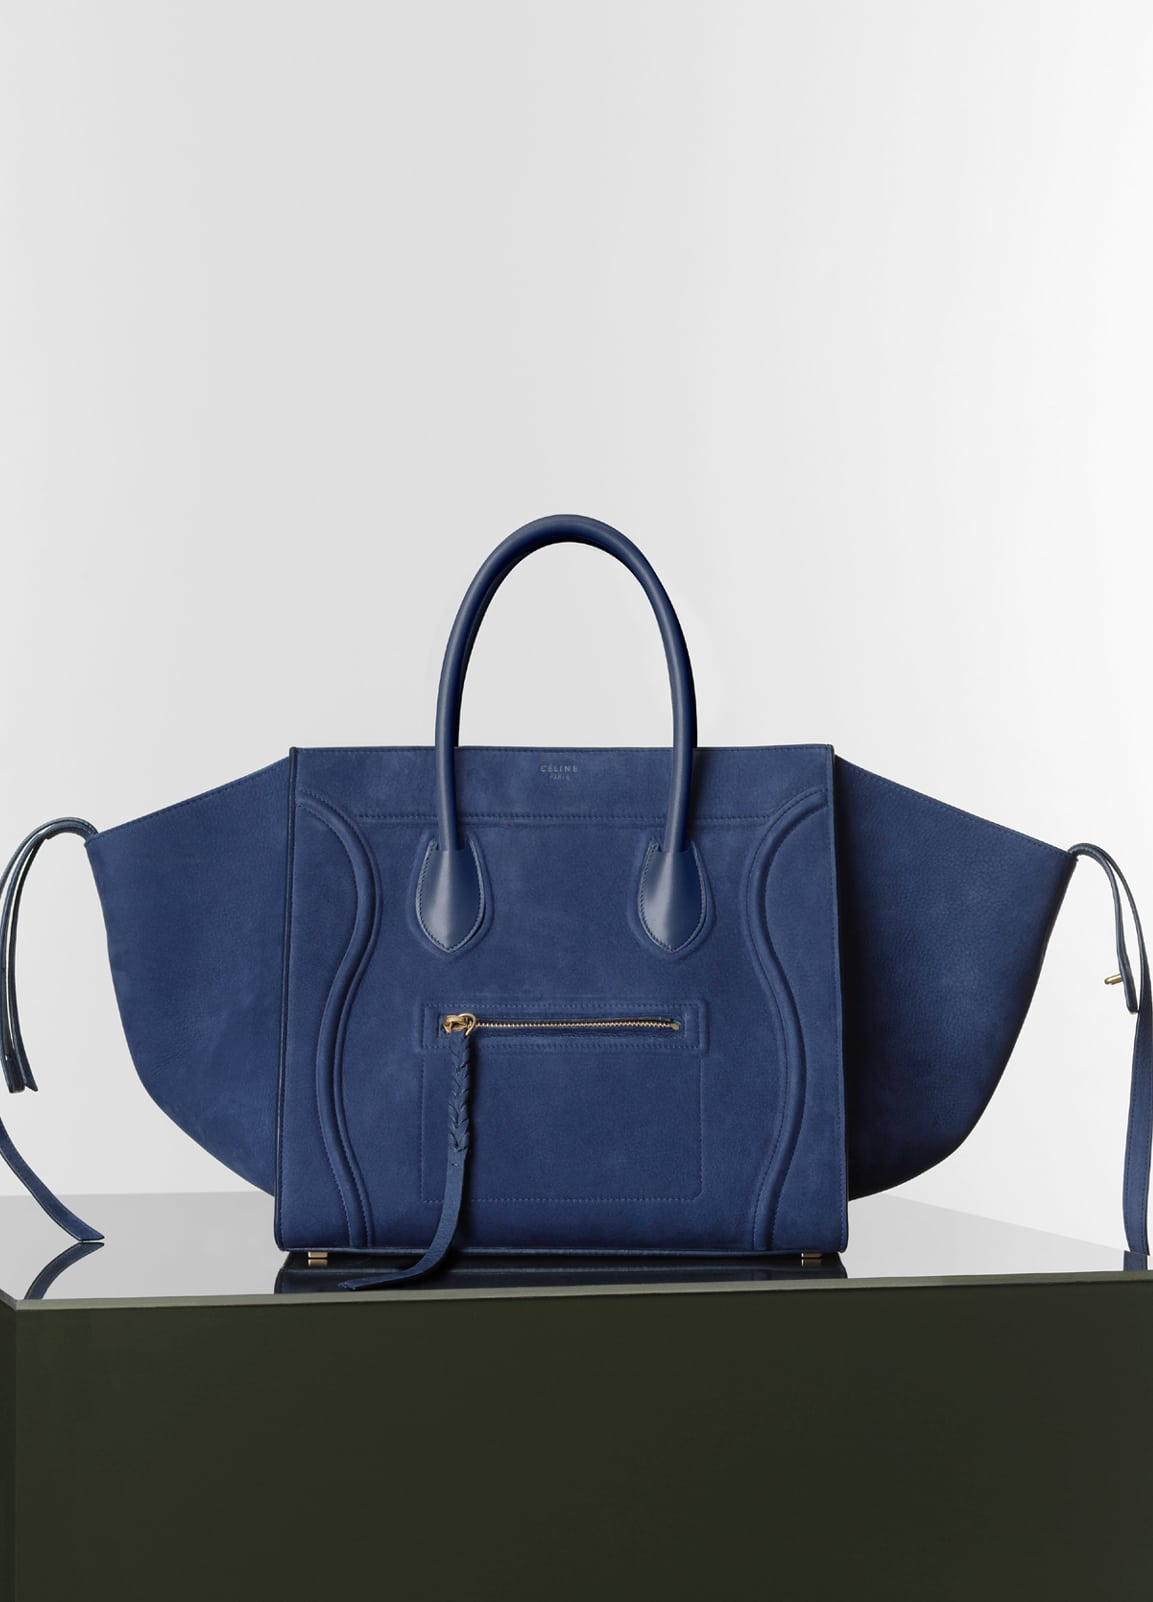 celine phantom bag suede